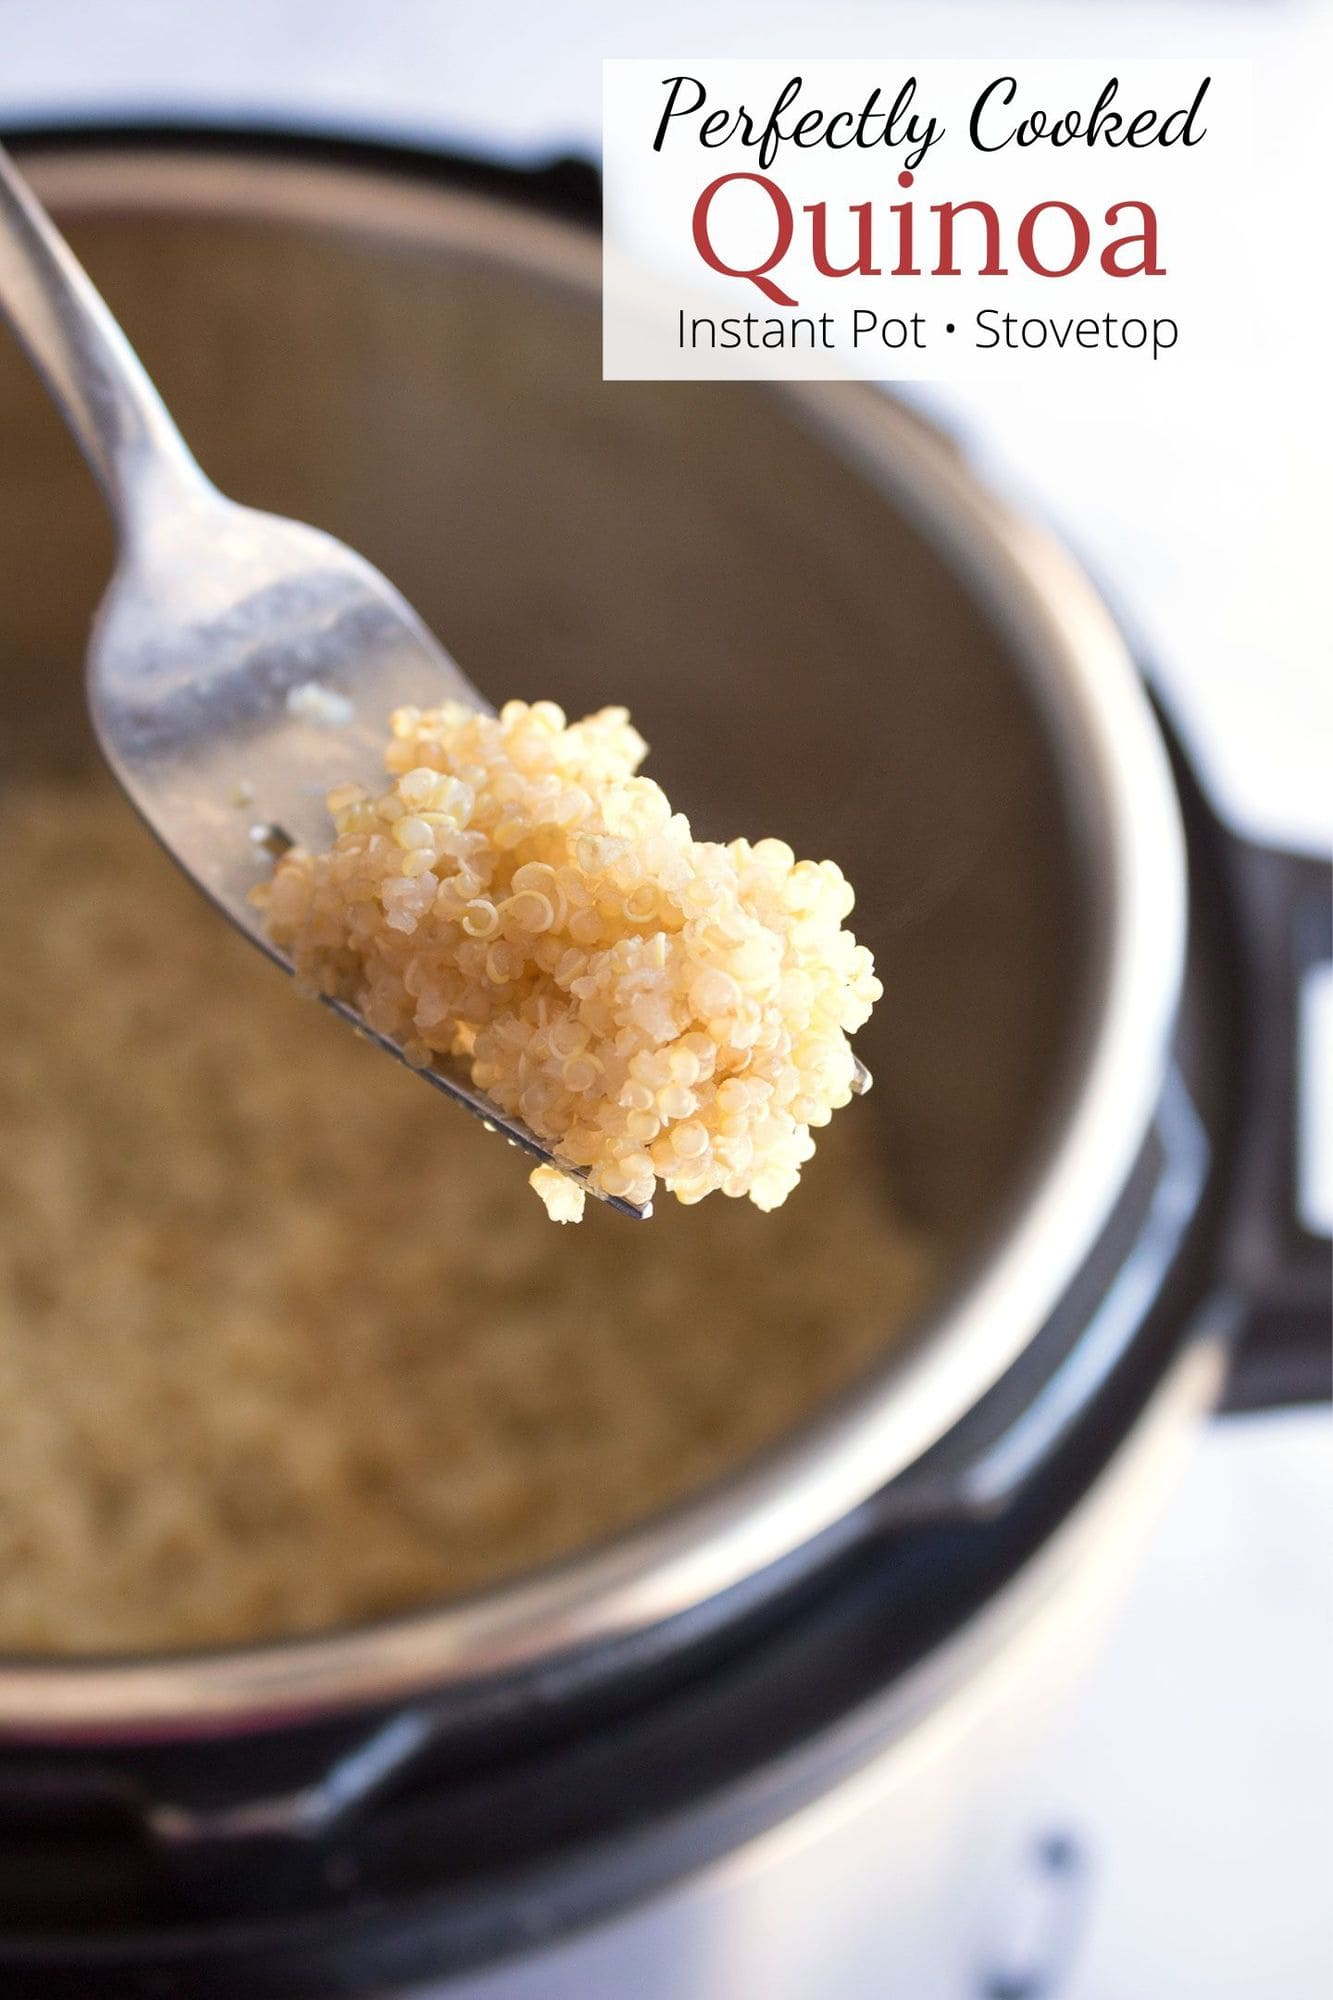 Fluffed quinoa on a fork with text overlay